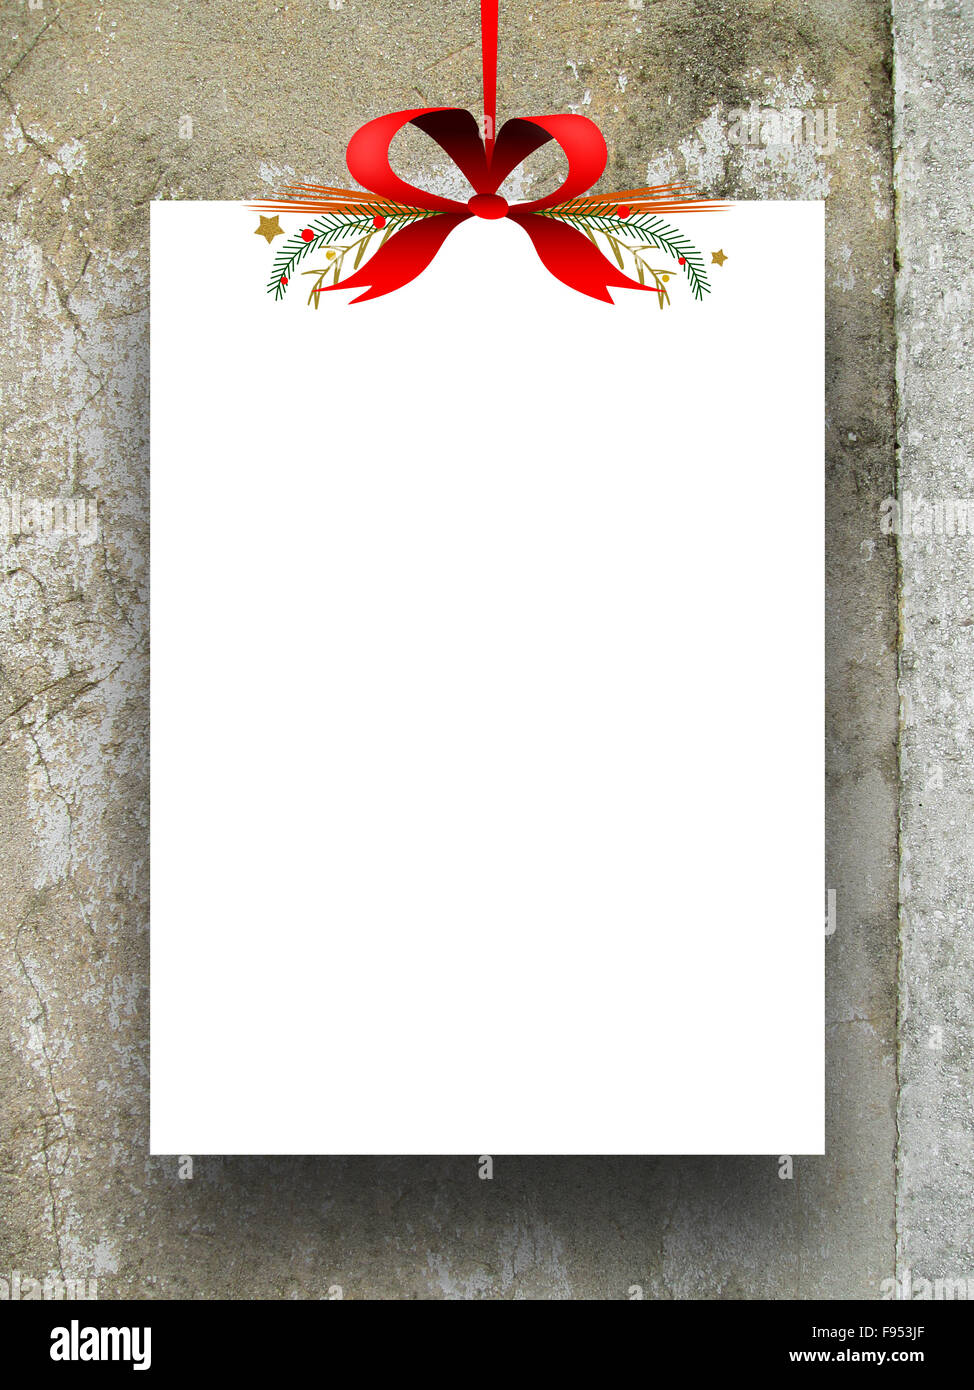 Single Empty Rectangular Paper Sheet Frame With Xmas Ribbon Stock